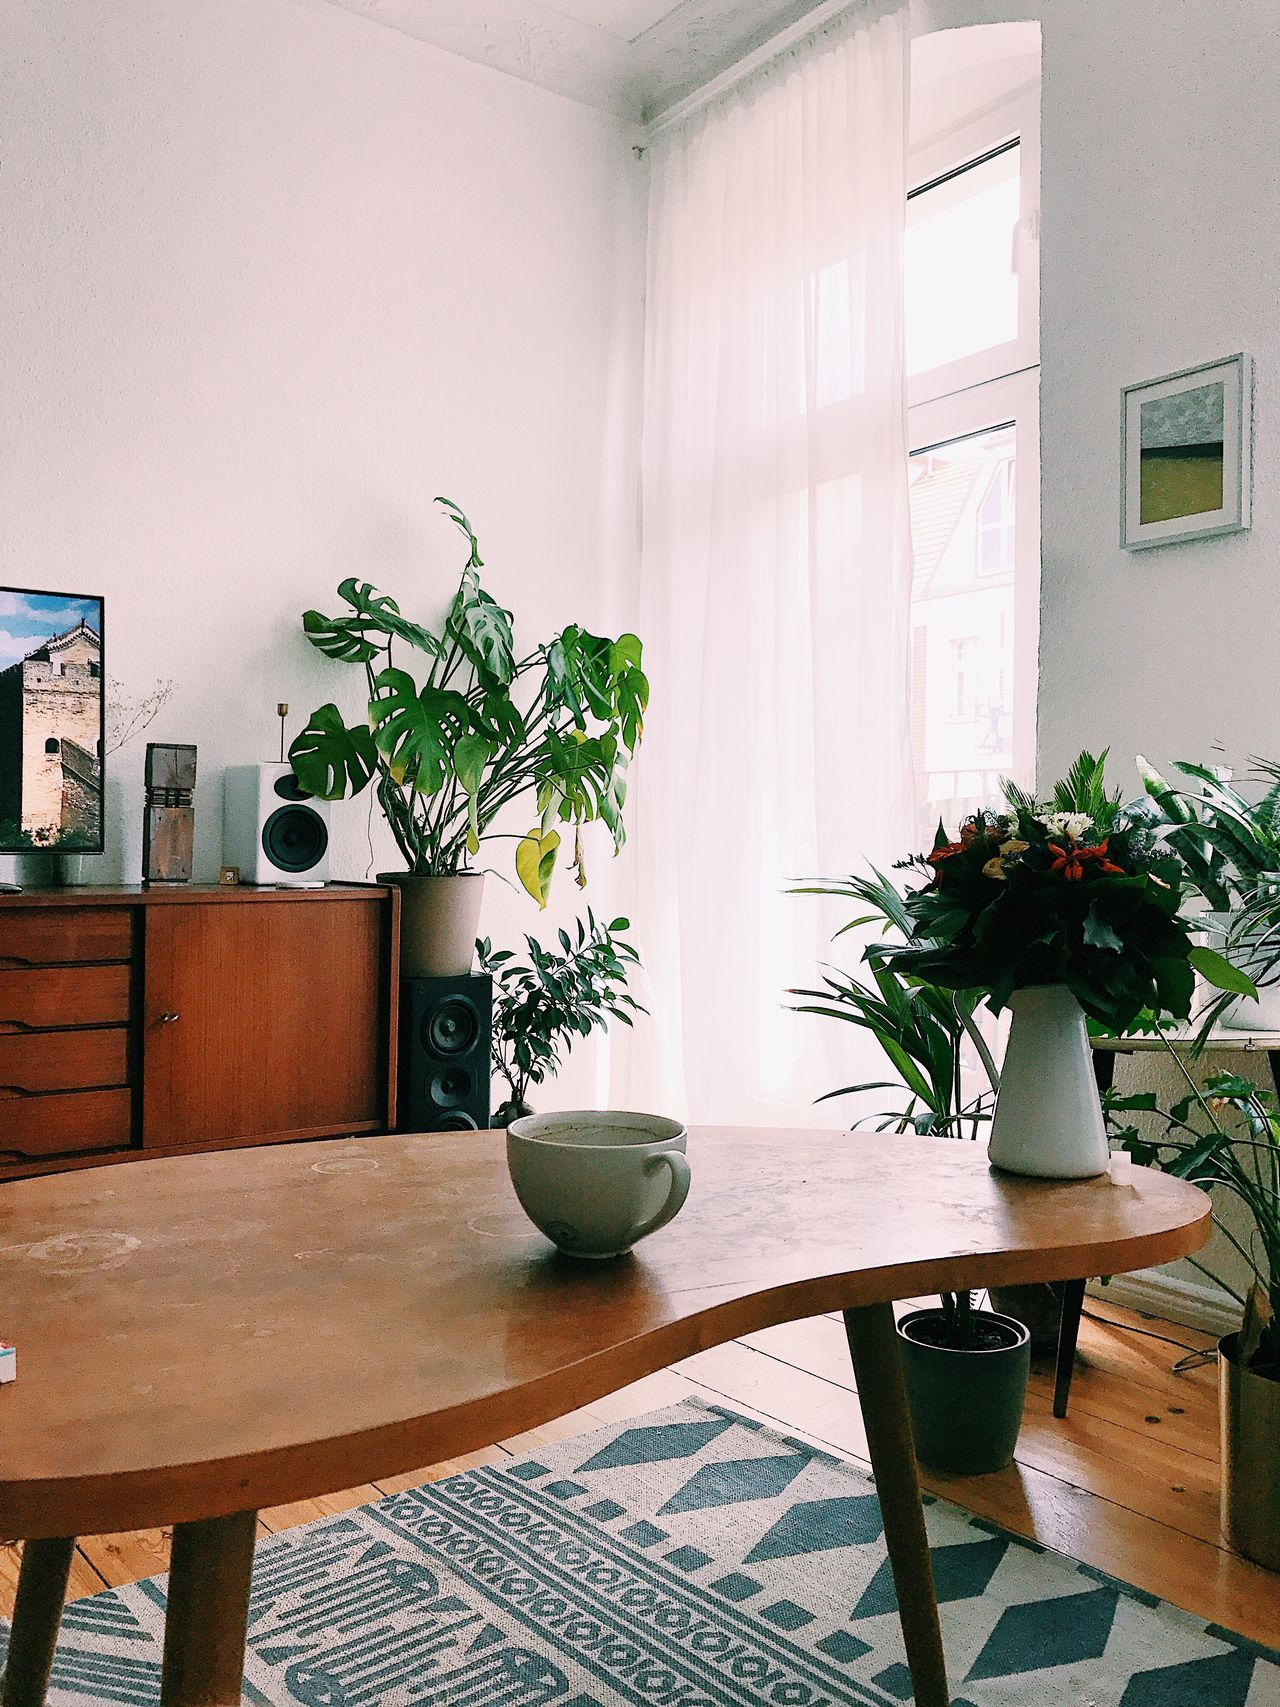 Table Potted Plant Indoors  Vase Home Interior Plant Chair Flower Wood - Material No People Day Growth Home Showcase Interior